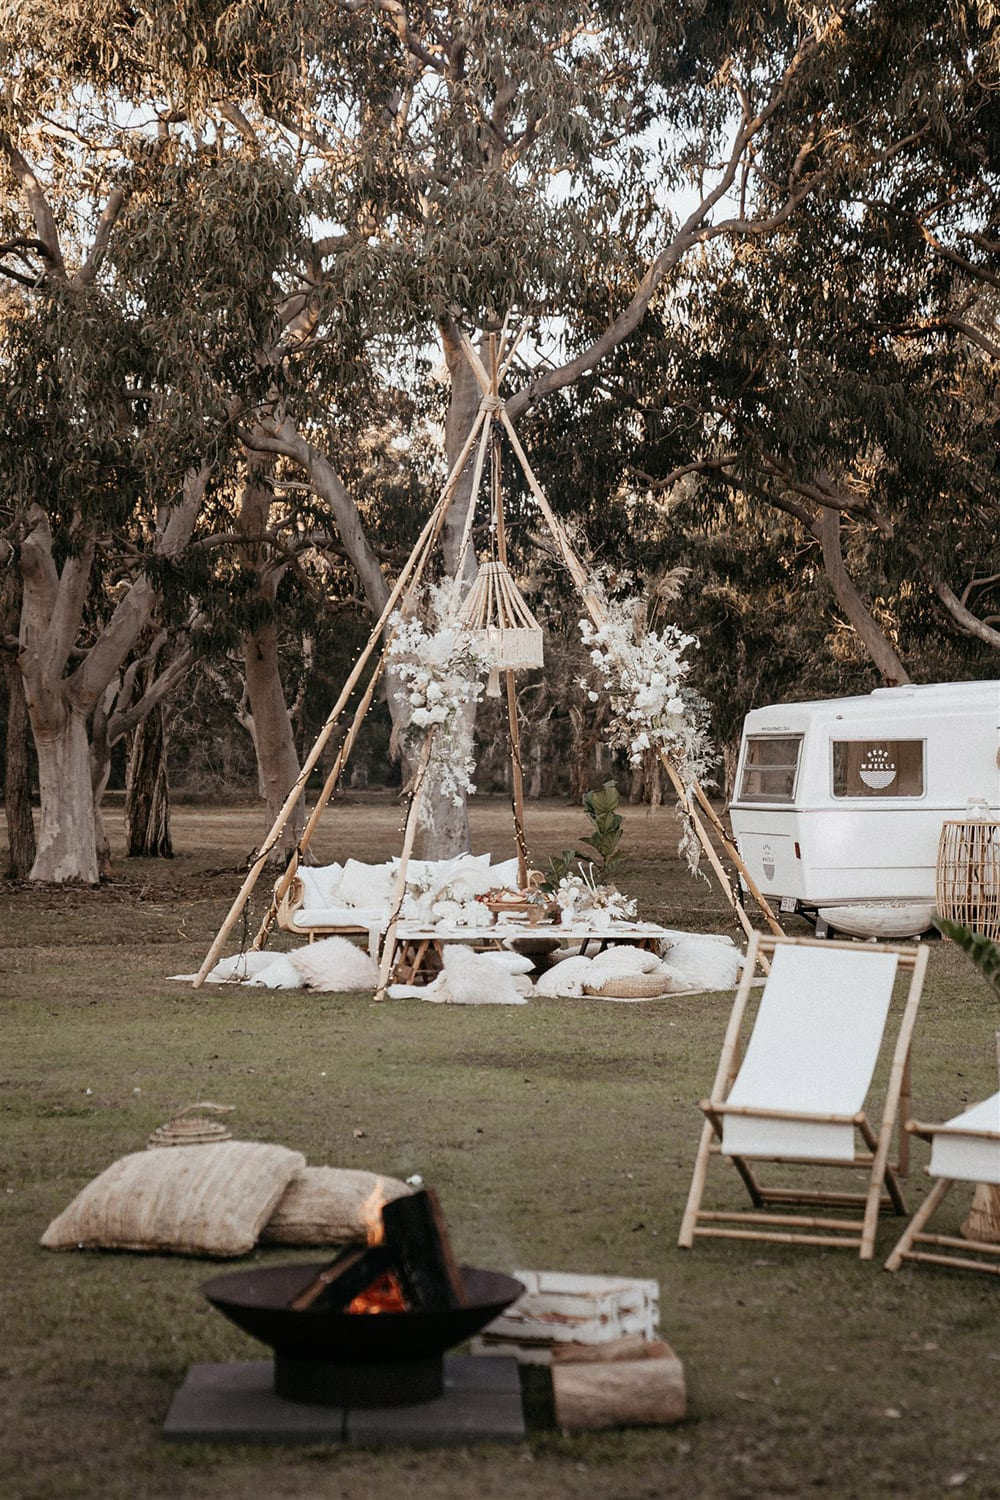 Outdoor Festival Bohemian Wedding Inspiration   A naked tipi wrapped in fairy lights and sprays of boho florals is set for picnic style grazing. Beneath a beaded and fringed chandelier sits layered rugs, scattered cushions in neutral and white textures and a low table set for eight. This is topped with a macrame runner and clusters of white vessels displaying fresh posies.   Photography: Shae Estella Photo